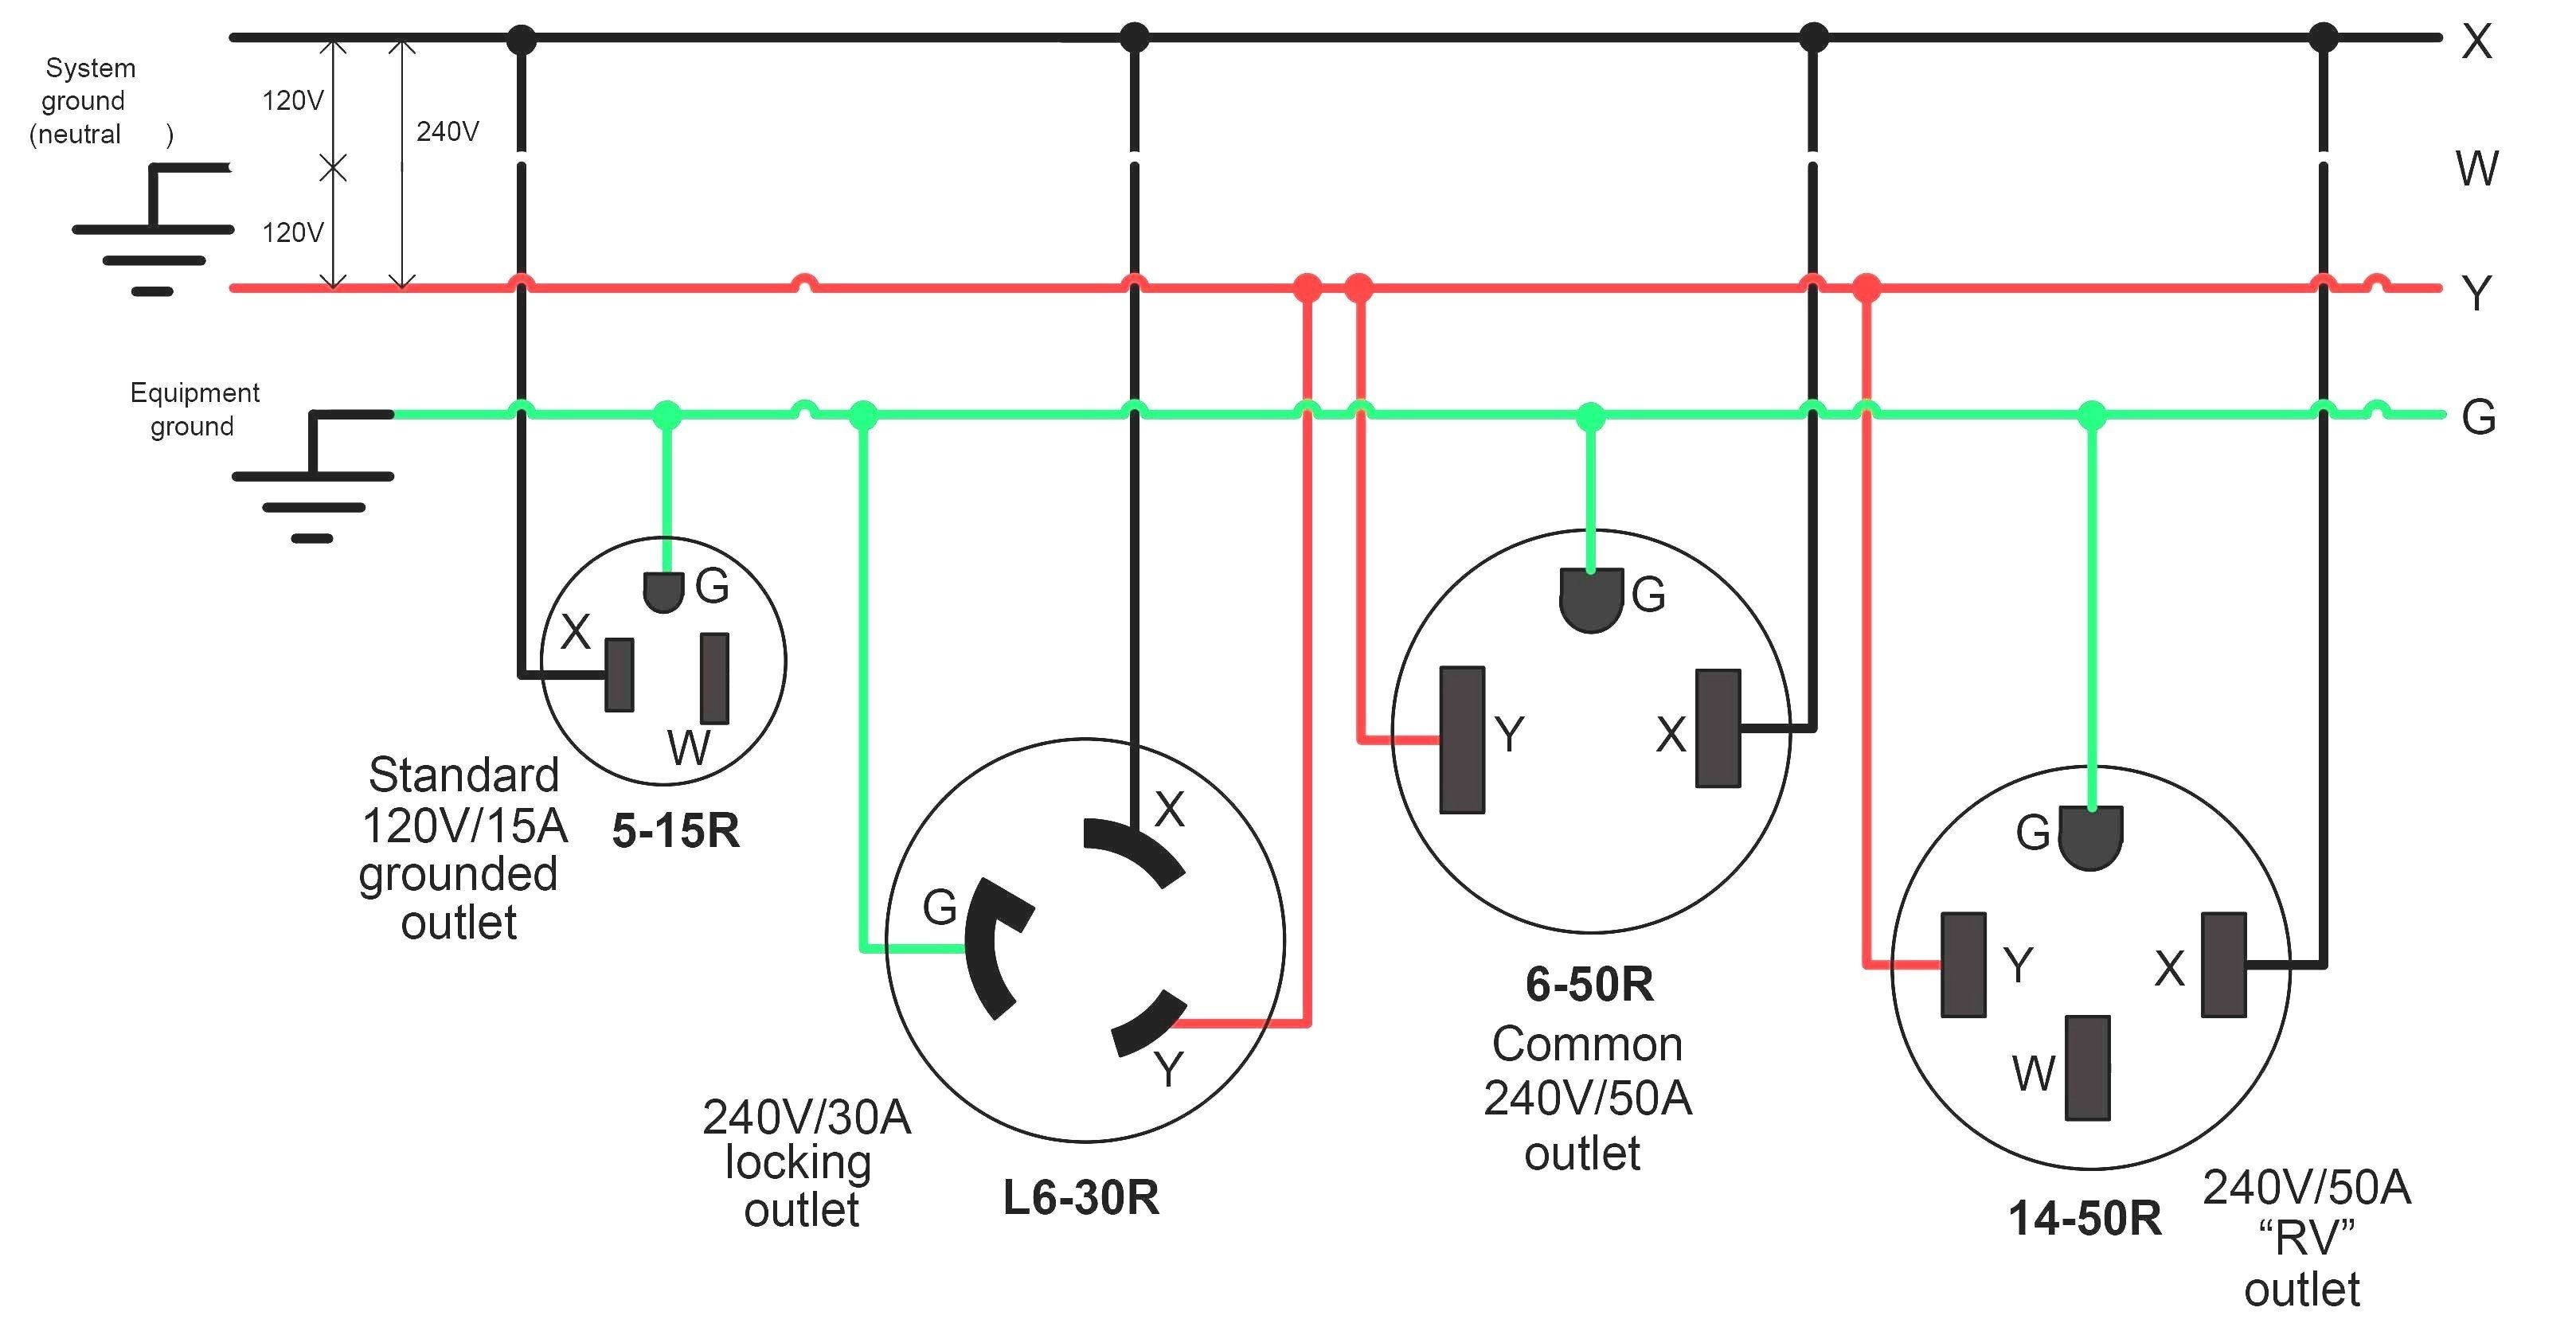 wiring a 240v dryer schematic wiring diagram home wiring a 240v dryer schematic [ 3235 x 1672 Pixel ]